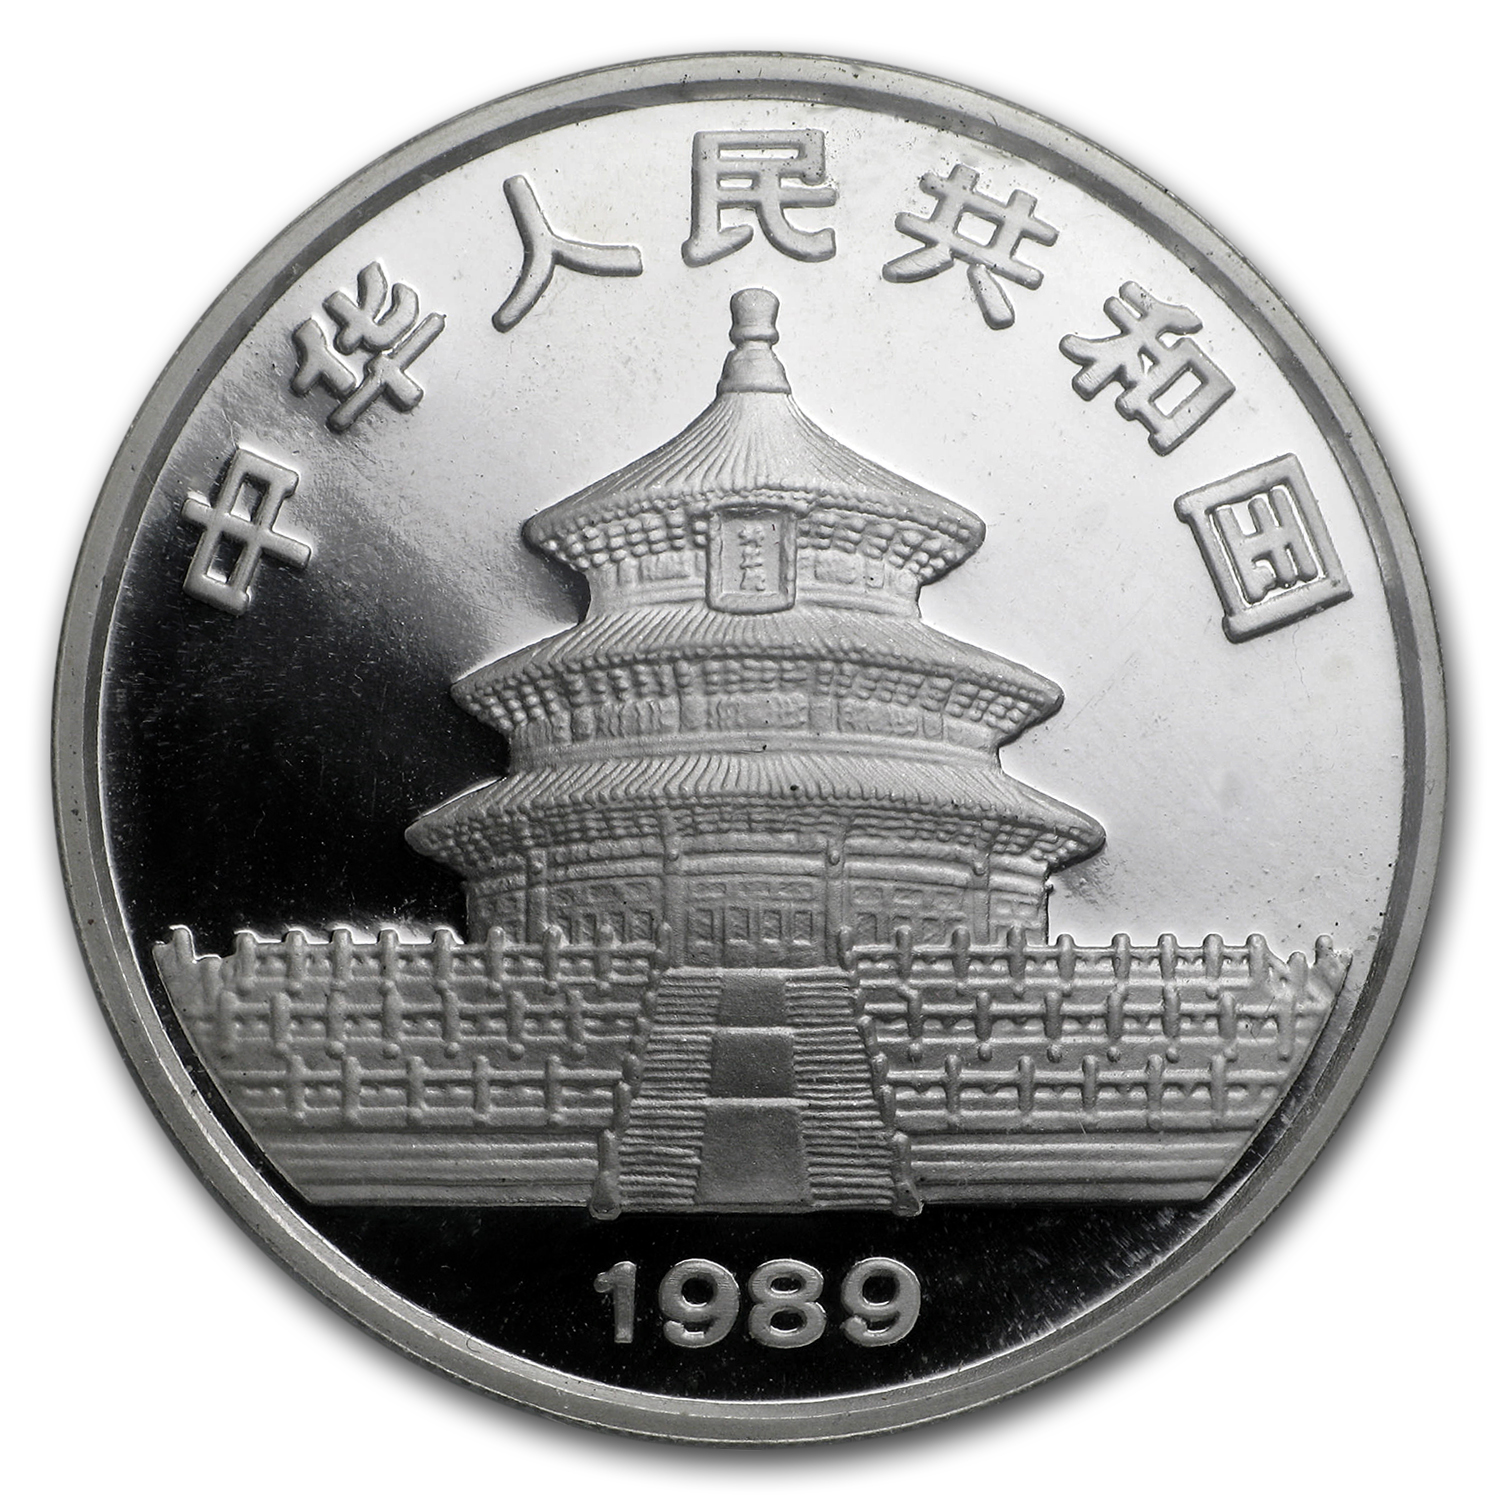 1989 China 1 oz Silver Panda Proof (Sealed)